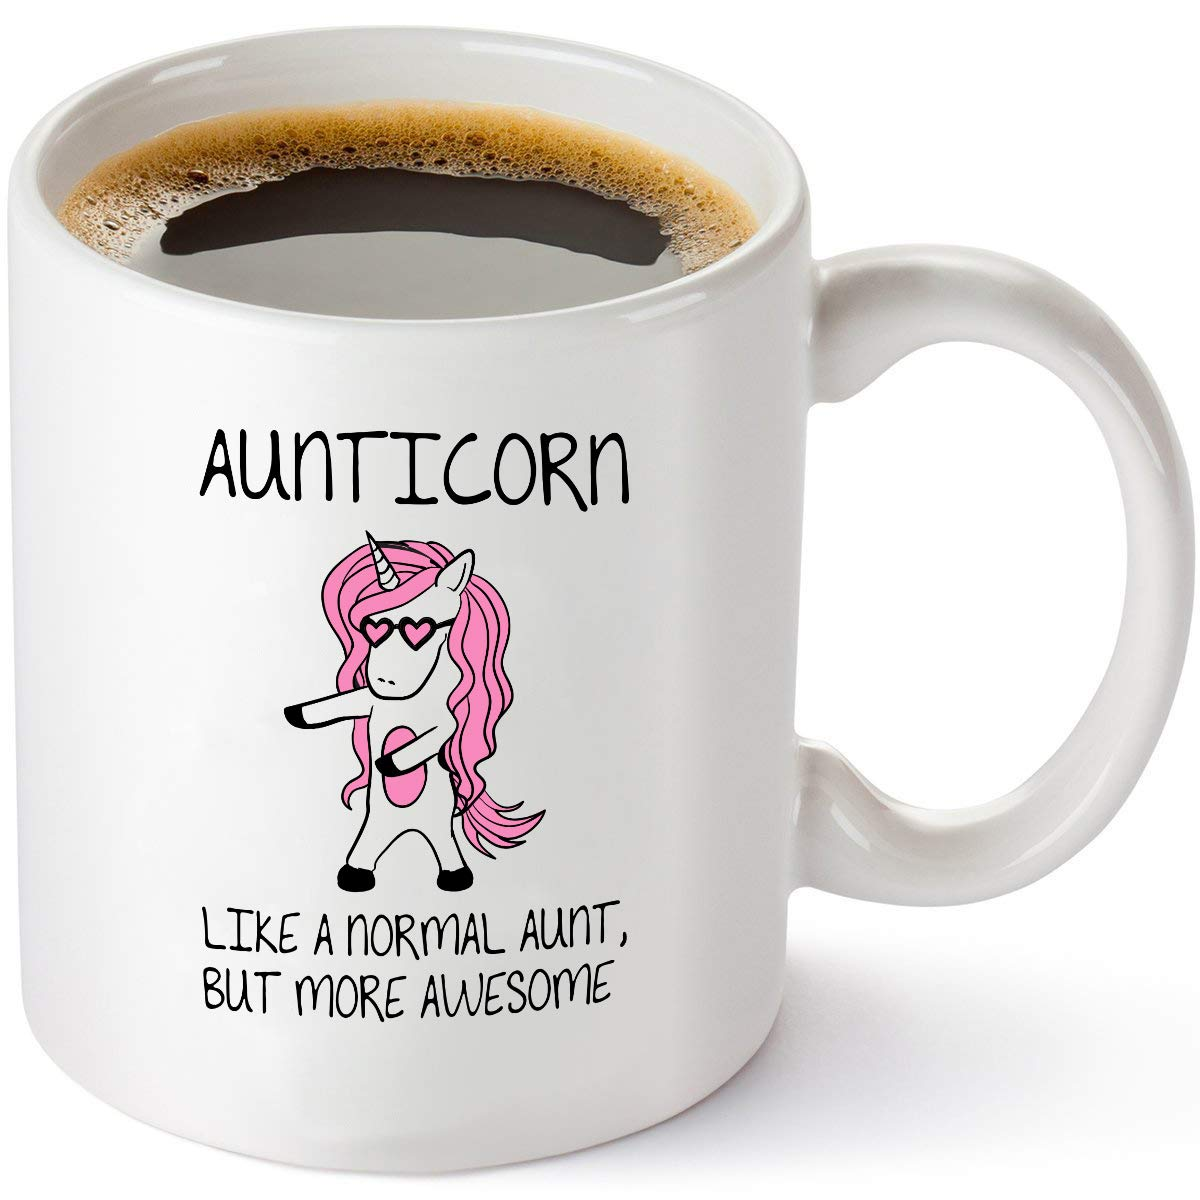 Aunticorn Funny Coffee Mug – Aunt Ever Gifts from Niece or Nephew – Birthday or Mothers Day Idea - 11 oz Tea Cup White